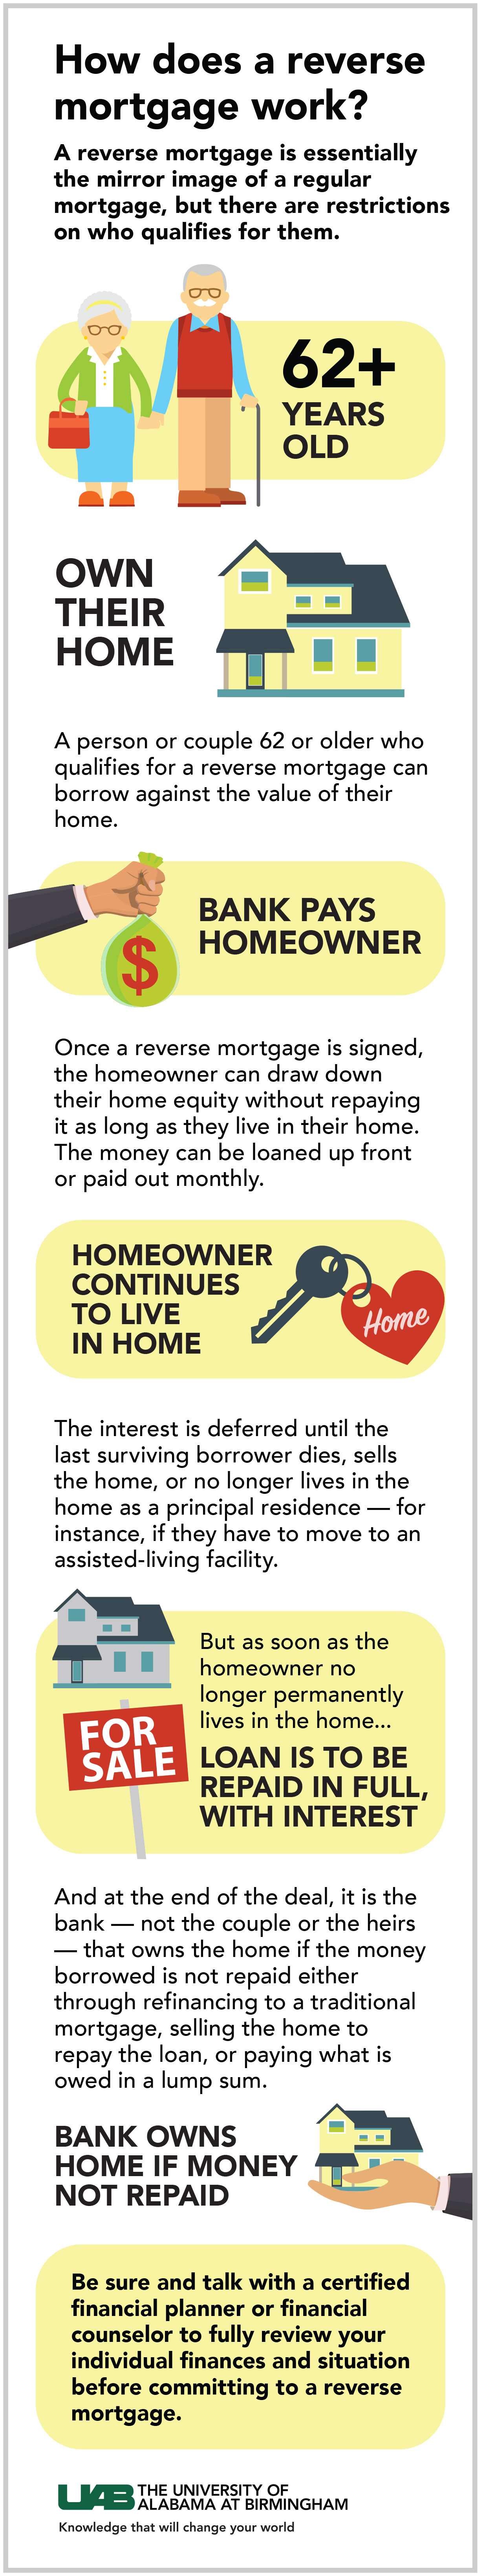 NYCU Reverse Mortgage graphic